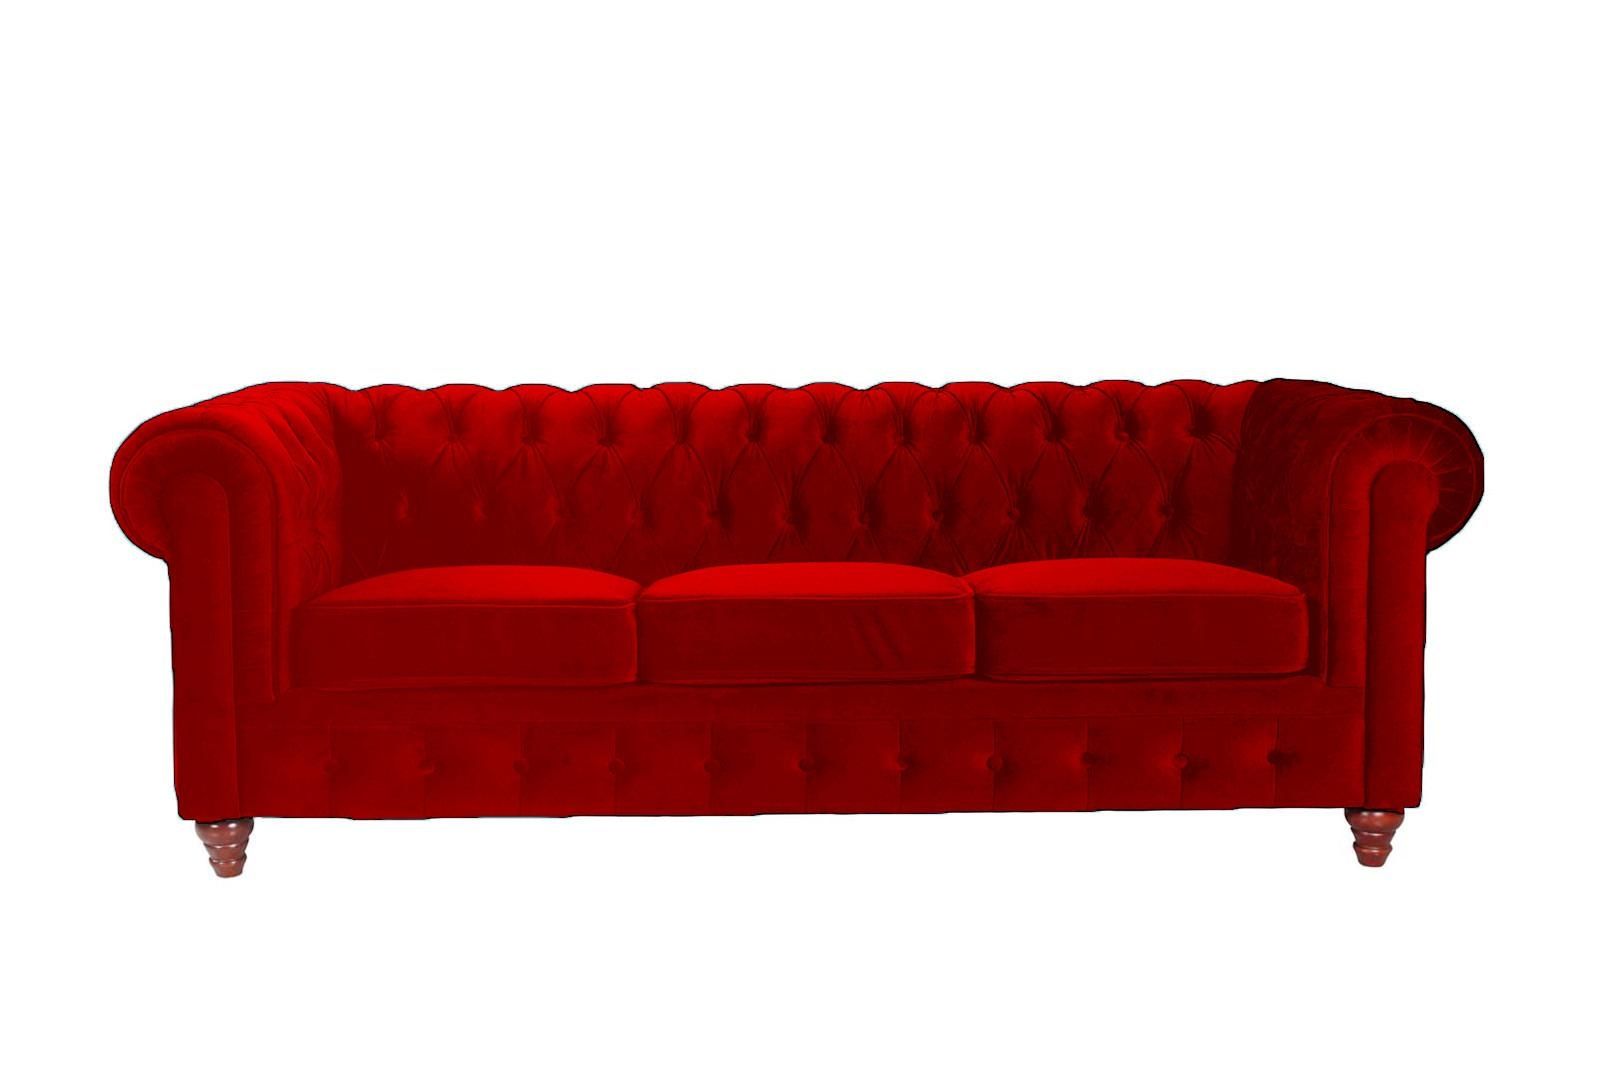 Classic Scroll Arm Tufted Velvet Chesterfield Large Sofa – Walmart With Red Chesterfield Sofas (Image 8 of 20)